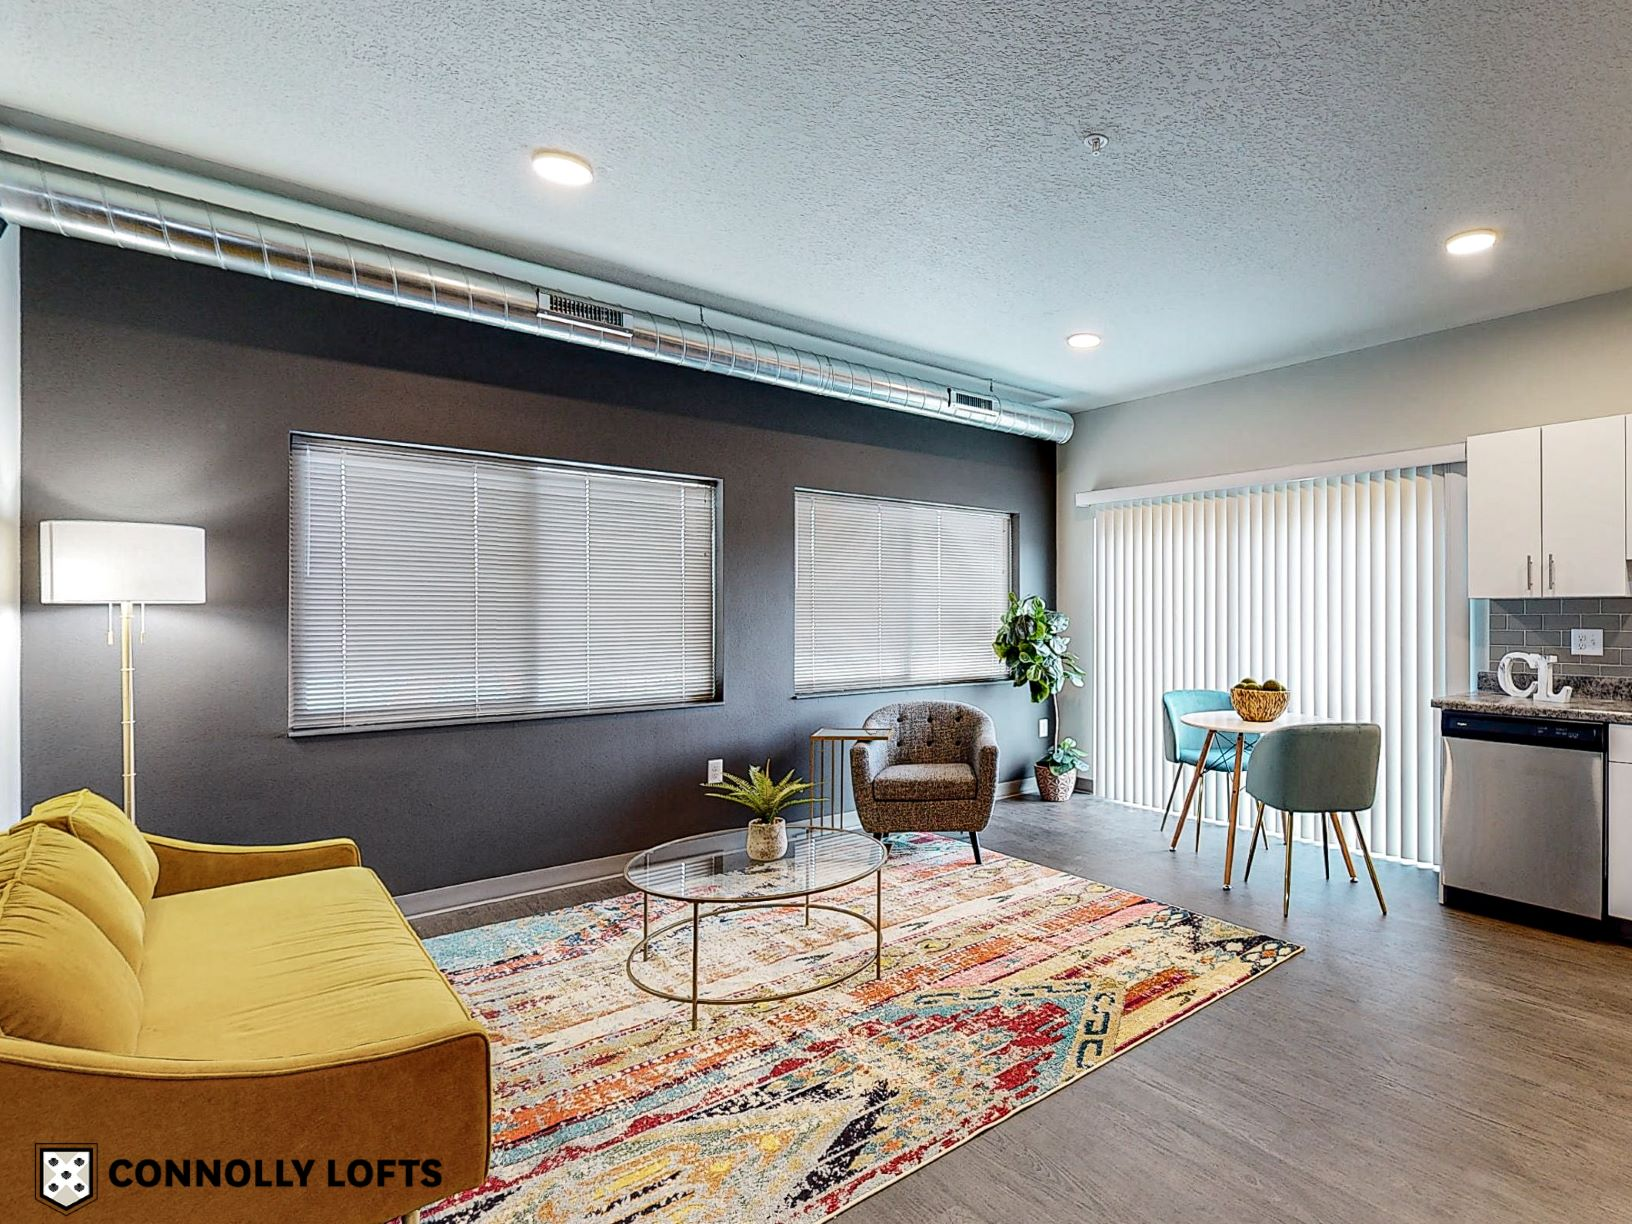 Connolly Lofts – Now Open!